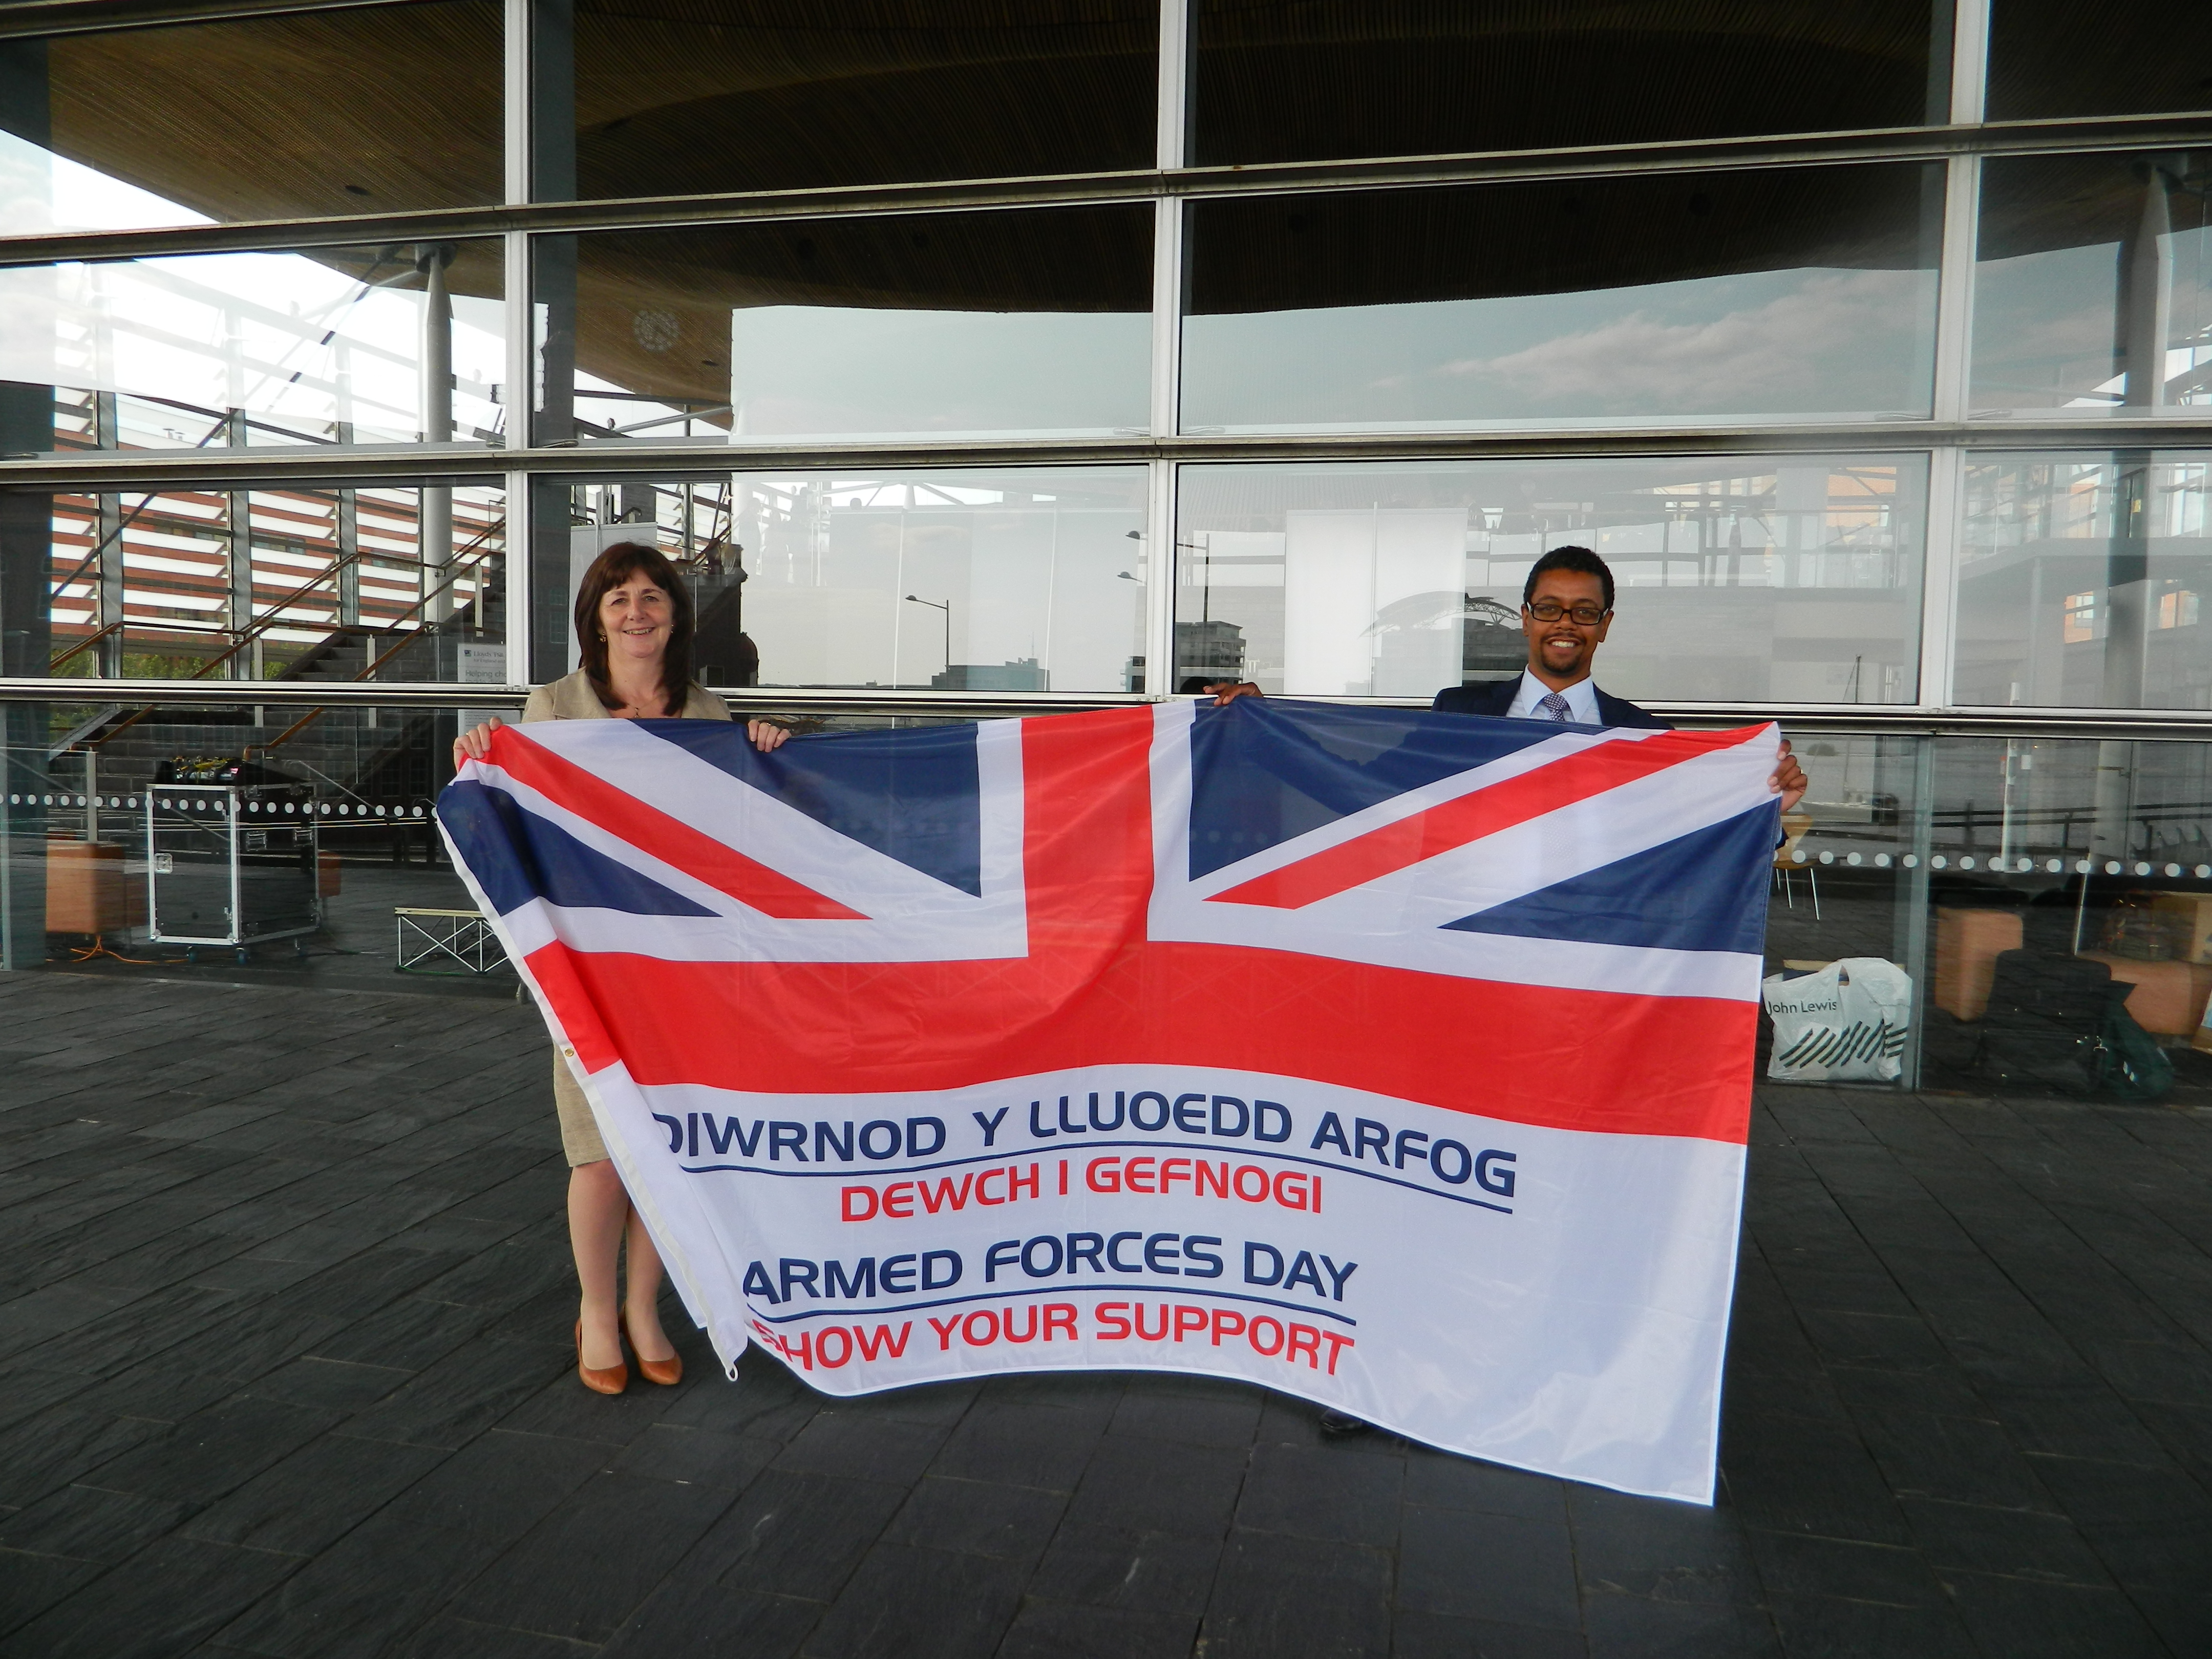 Armed_forces_day_with_Lesley_Griffiths_(2).JPG